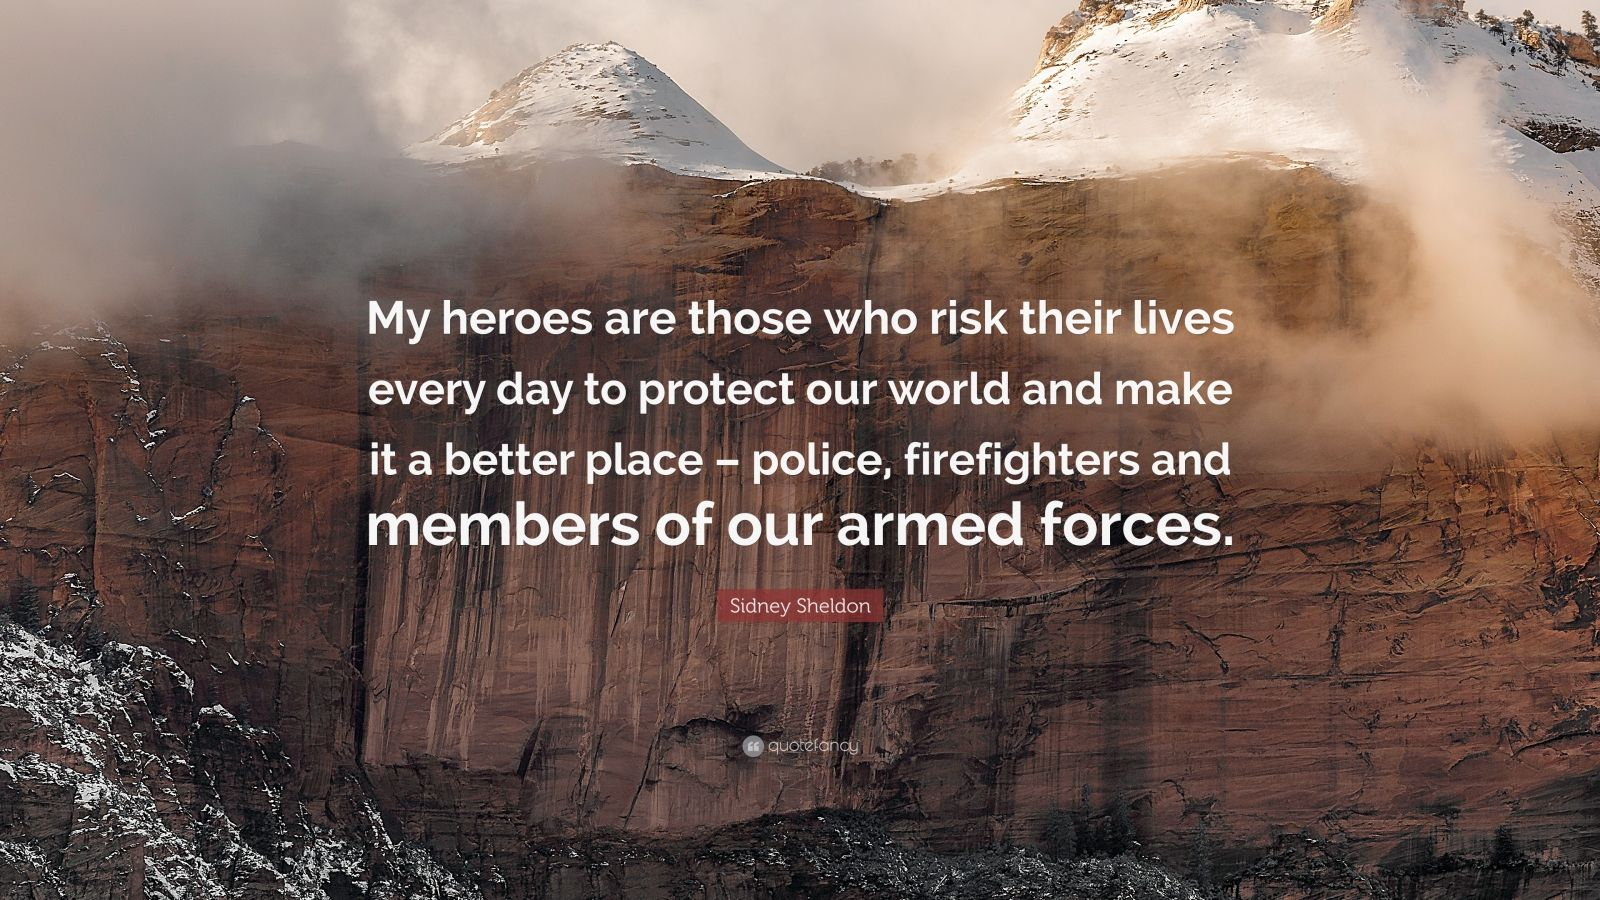 """Sidney Sheldon Quote: """"My heroes are those who risk their lives every day to protect our world and make it a better place – police, firefighters and members of our armed forces."""""""